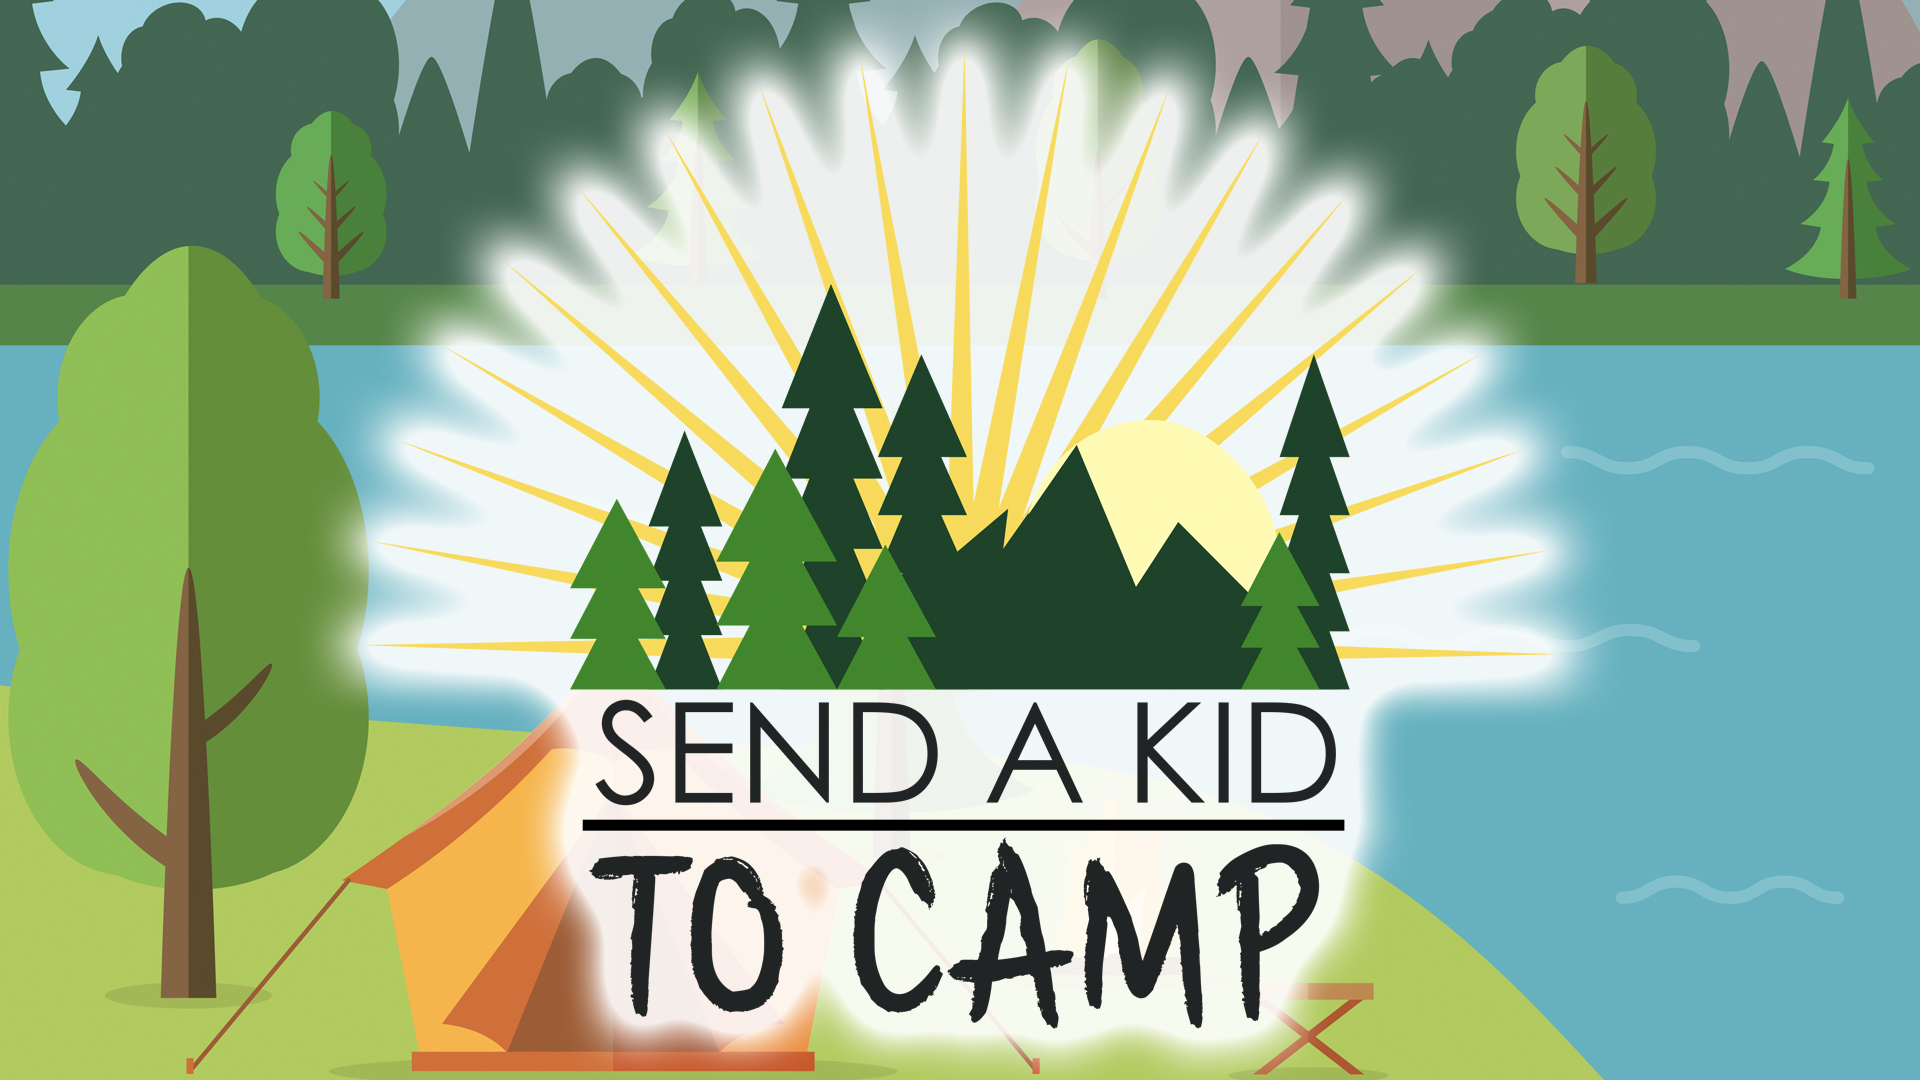 Learn about Send A Kid To Camp Day